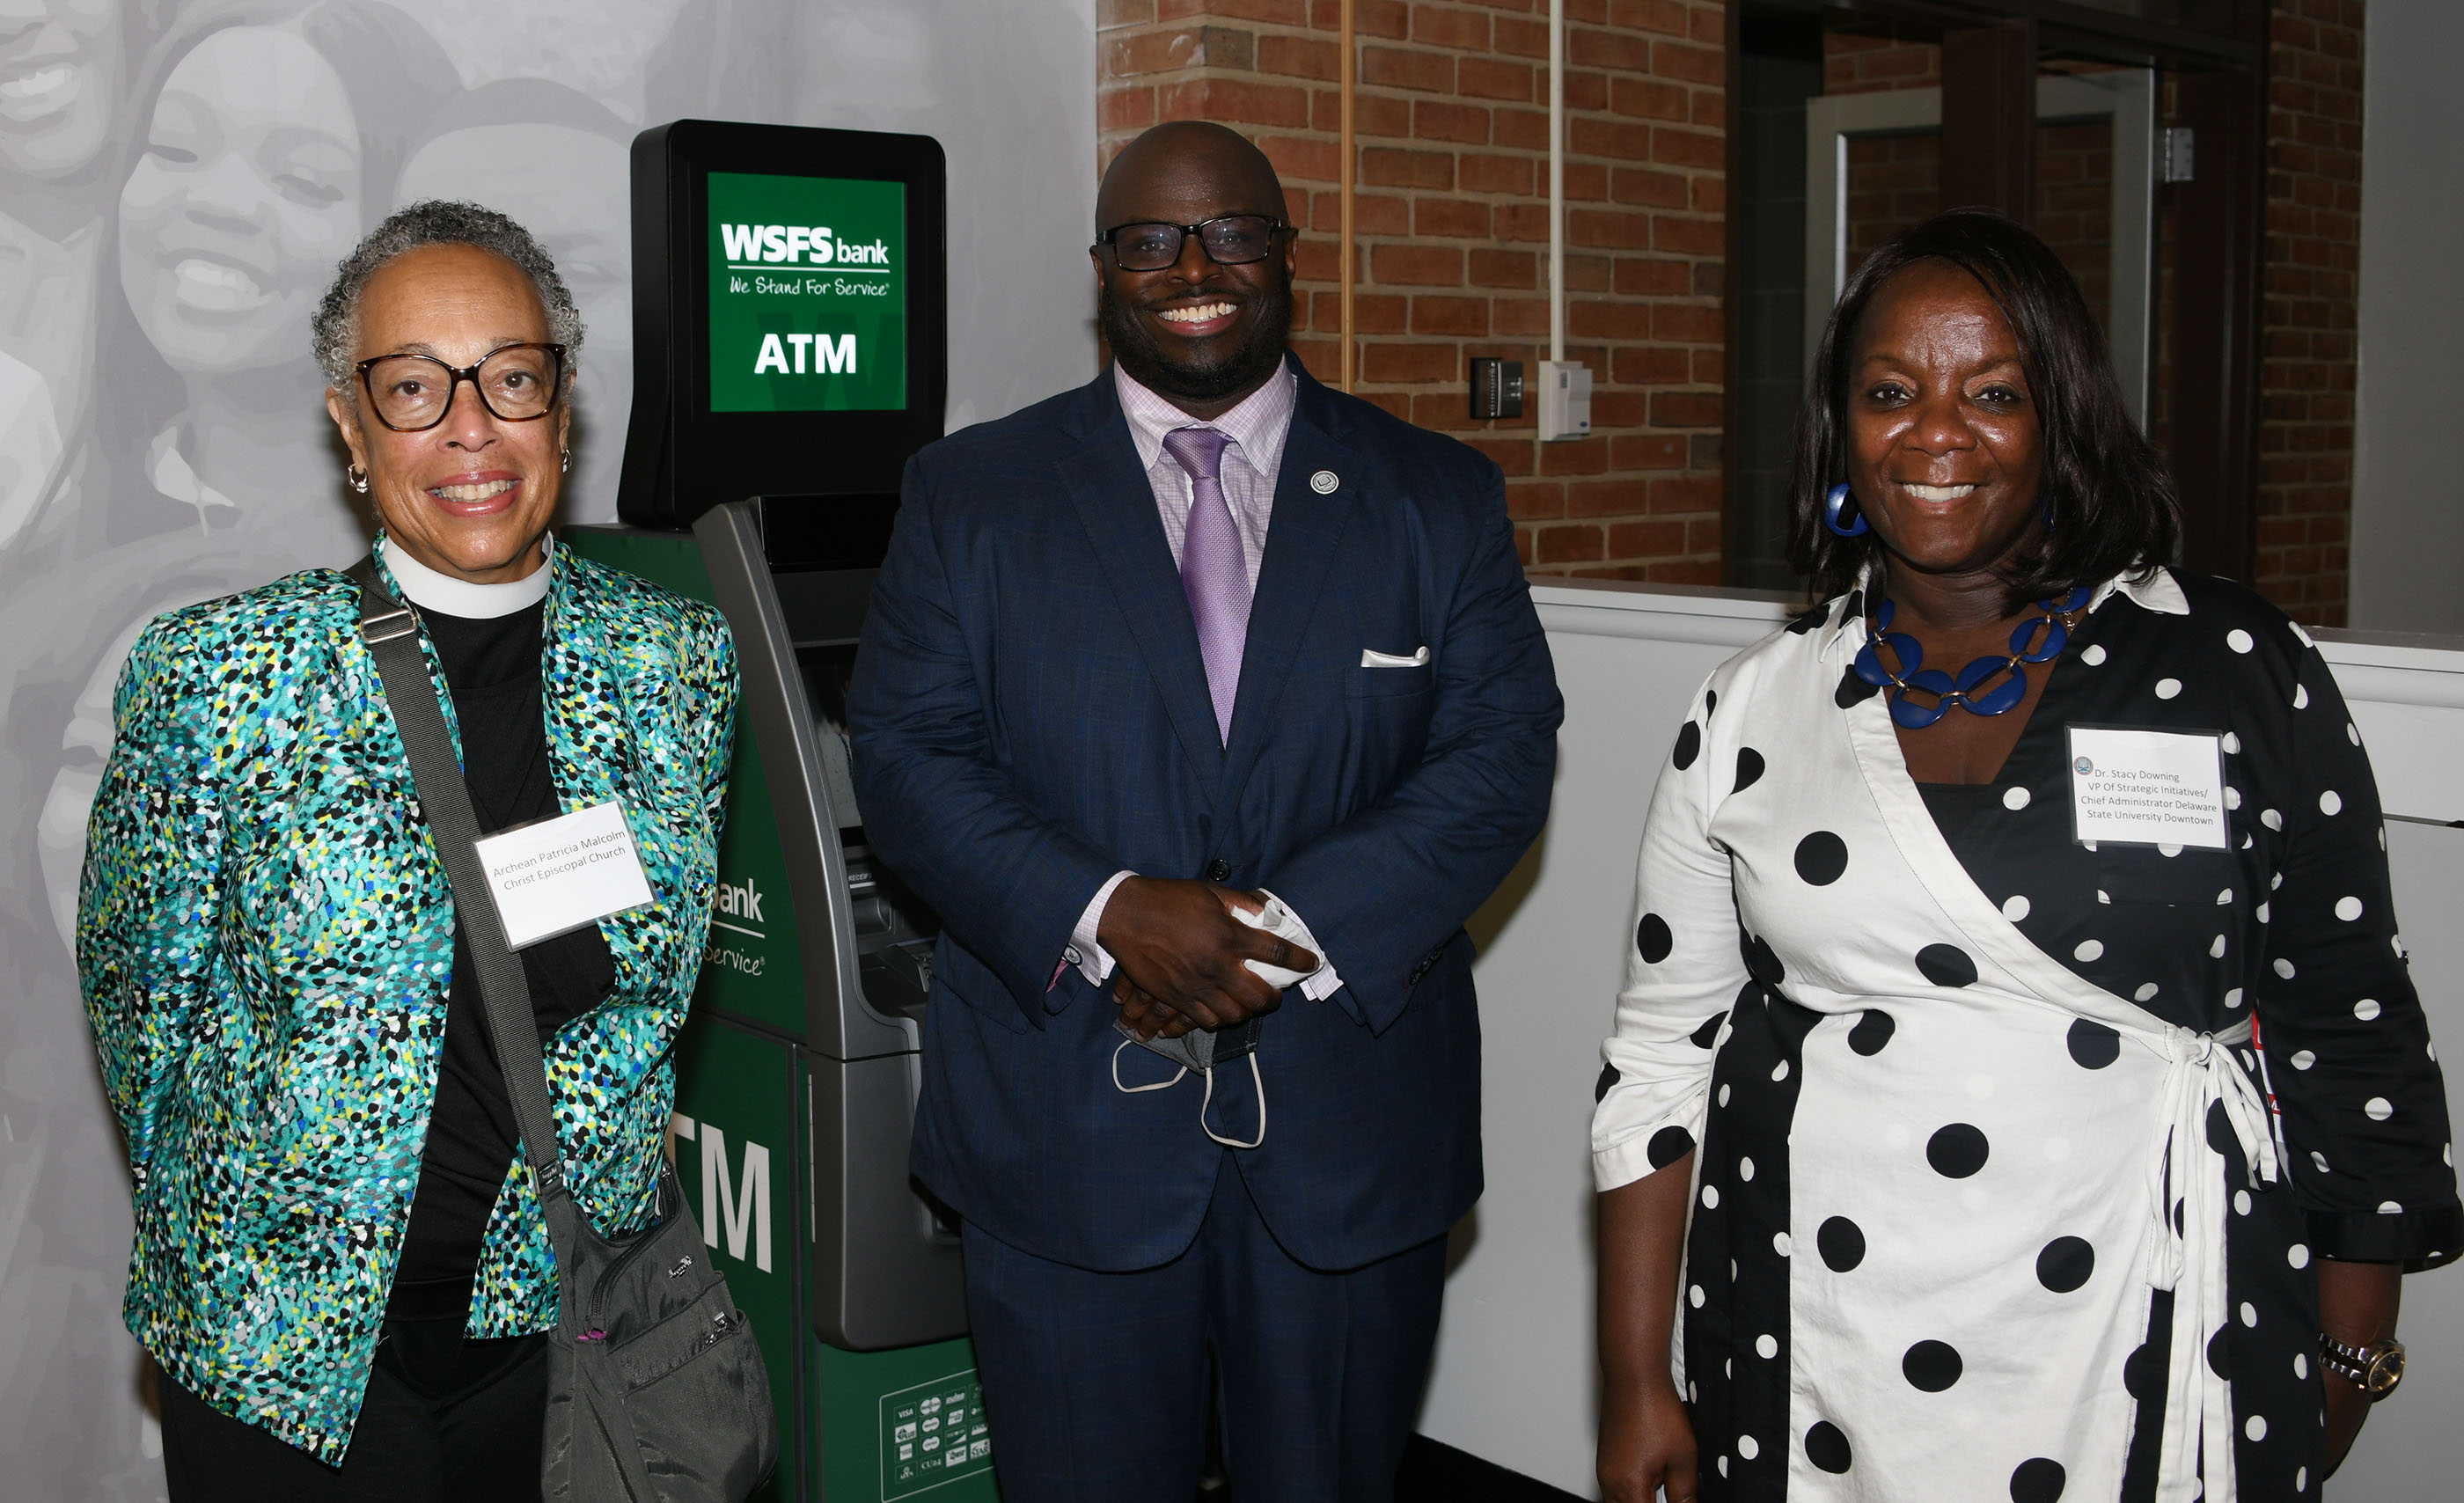 Patricia Malcome of Christ Episcopal Church, Del State's Dr. Tony Allen and Dr. Stacy Downing.